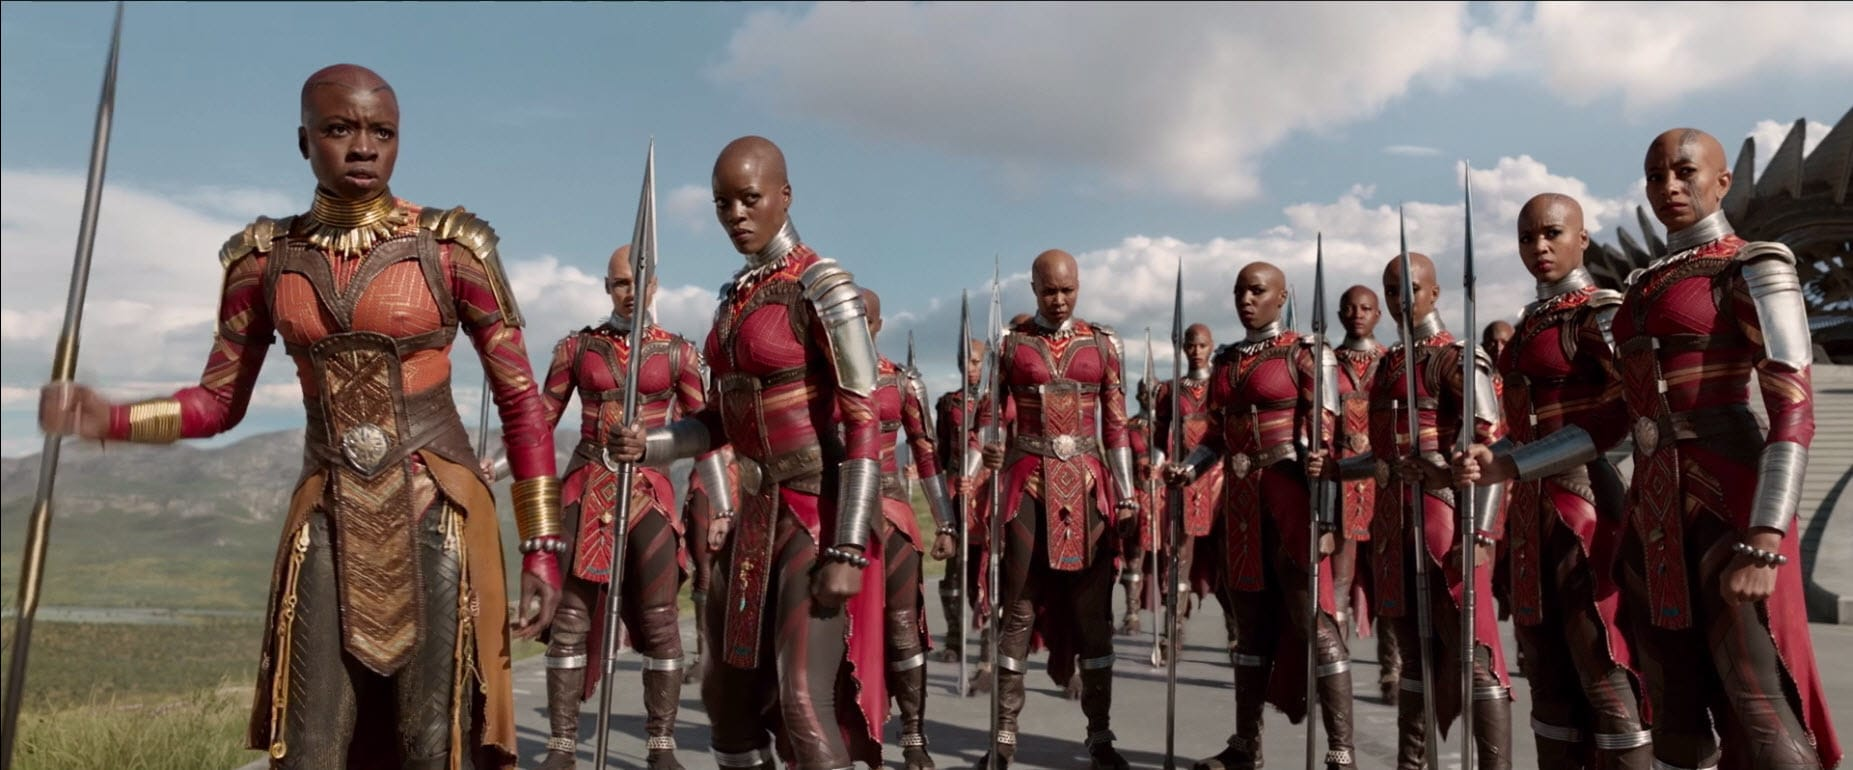 Warriors of Wakanda | Marvel Studios' Black Panther